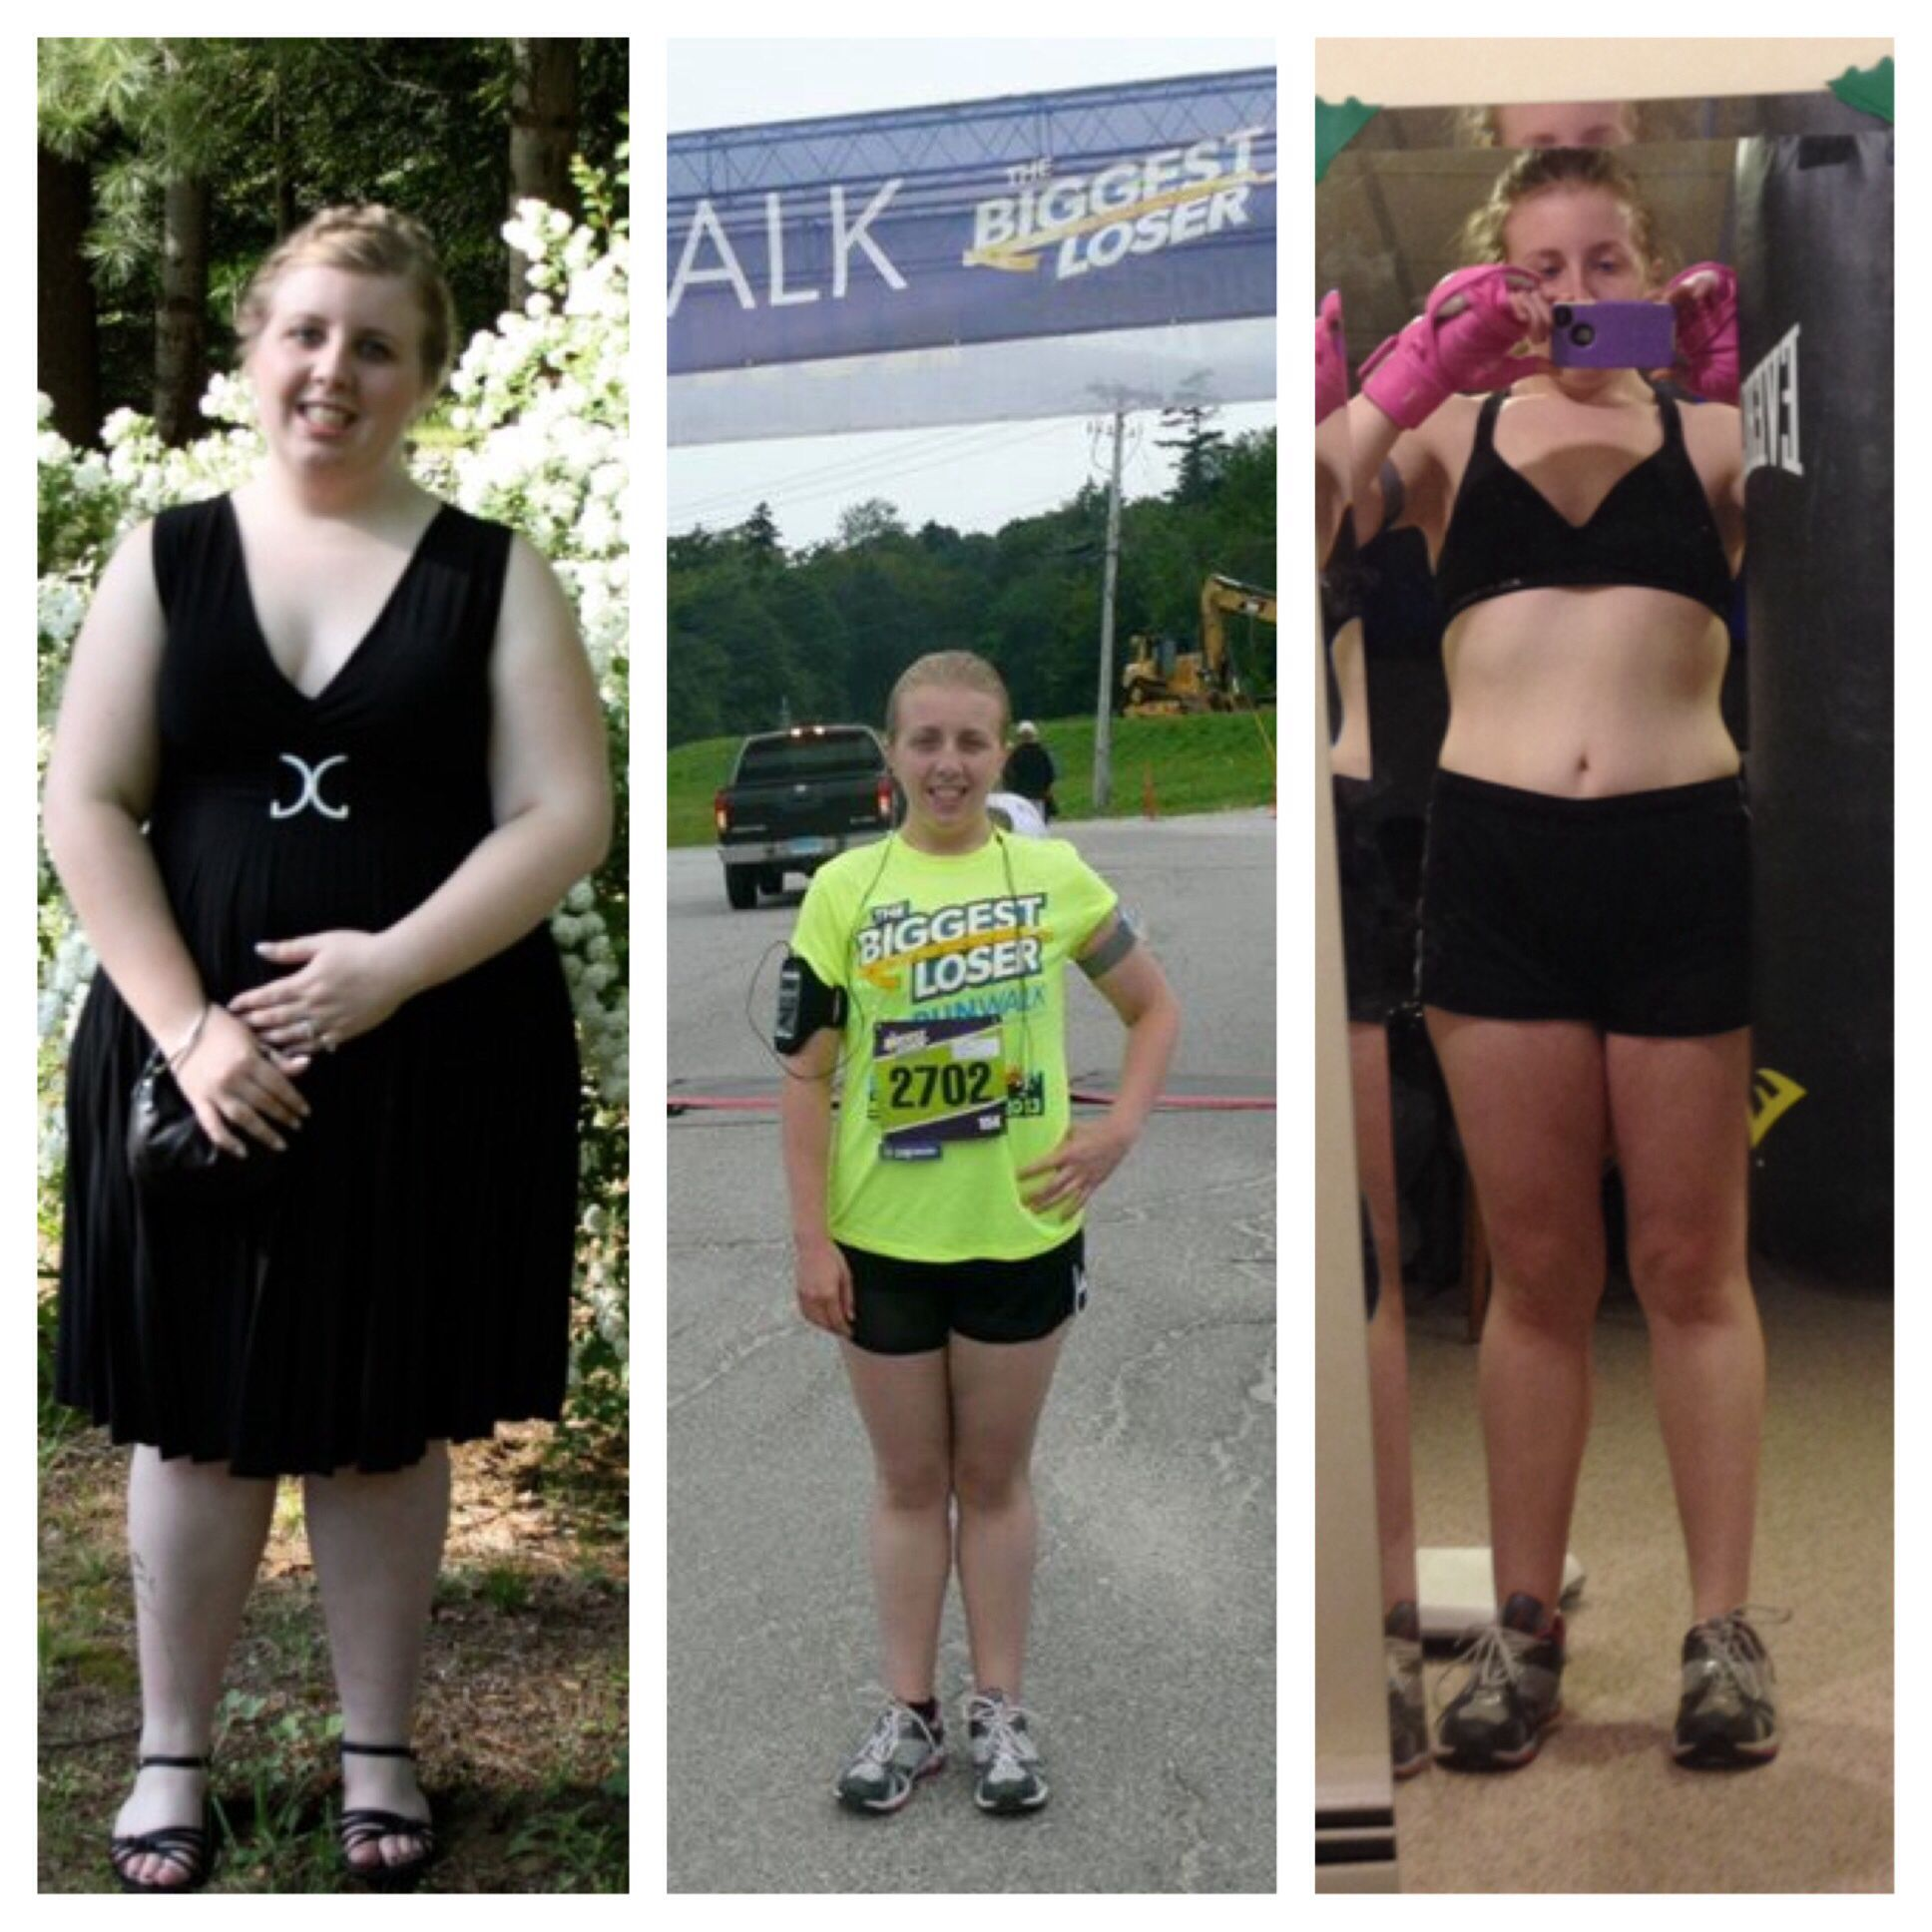 The first photo is from junior prom the second is me last year at the run/walk in Killington, VT and the third is me a few weeks ago